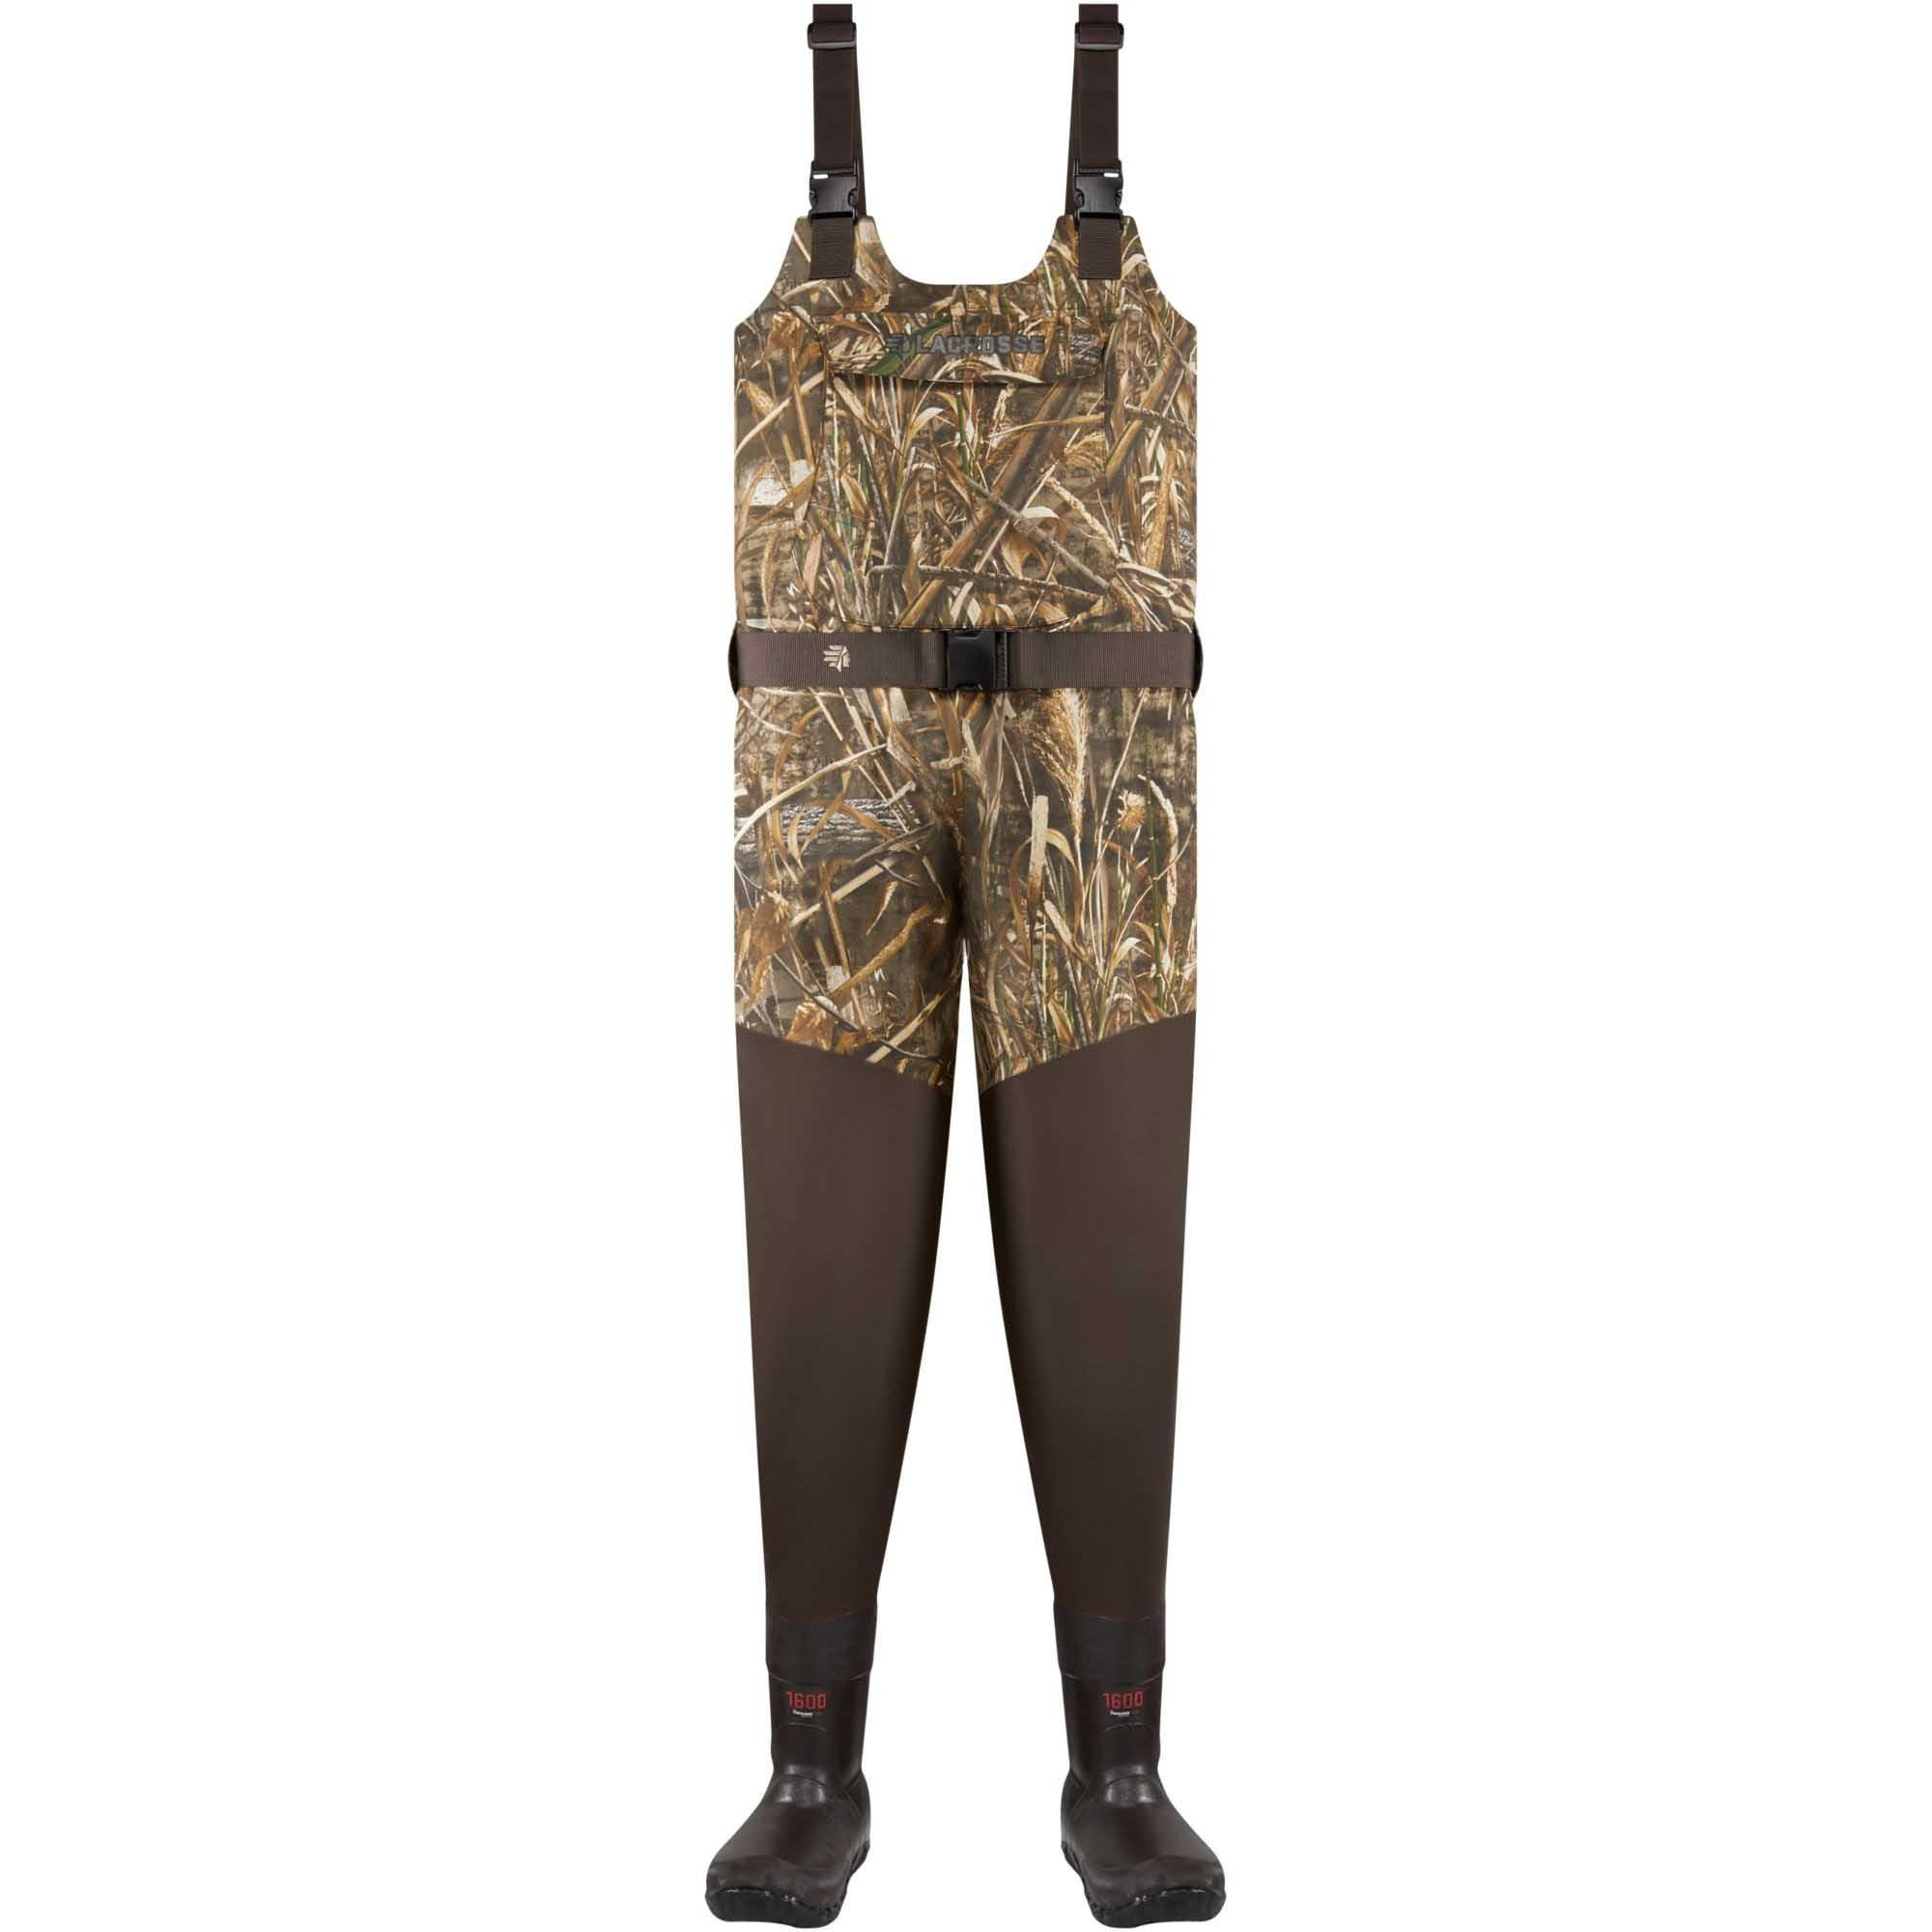 LaCrosse Wetlands Waders 1600G, Max 5 - King Sizes_1.jpg